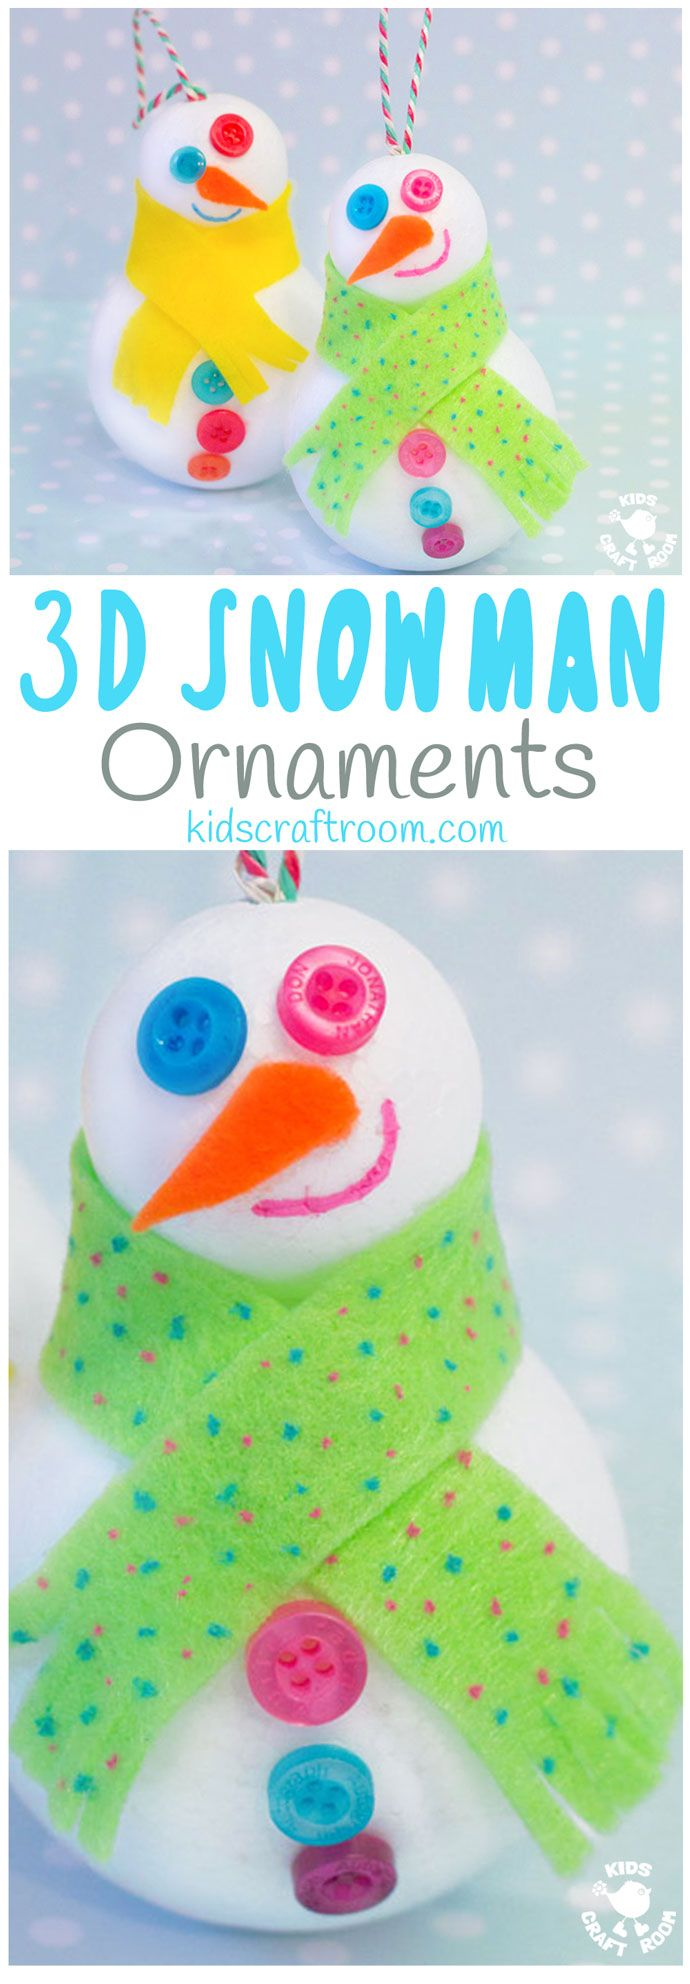 CUTE SNOWMAN ORNAMENTS - Easy 3D Snowman Craft for kids - great for hanging on the Christmas tree or for small world play. Kids will love how quick it is to make a Snowman friend. #christmas #winter #christmascrafts #wintercrafts #ornaments #snowman #snowmen #snowmancraft #wintercraftideas #kidscrafts #kidscraftroom  via @KidsCraftRoom